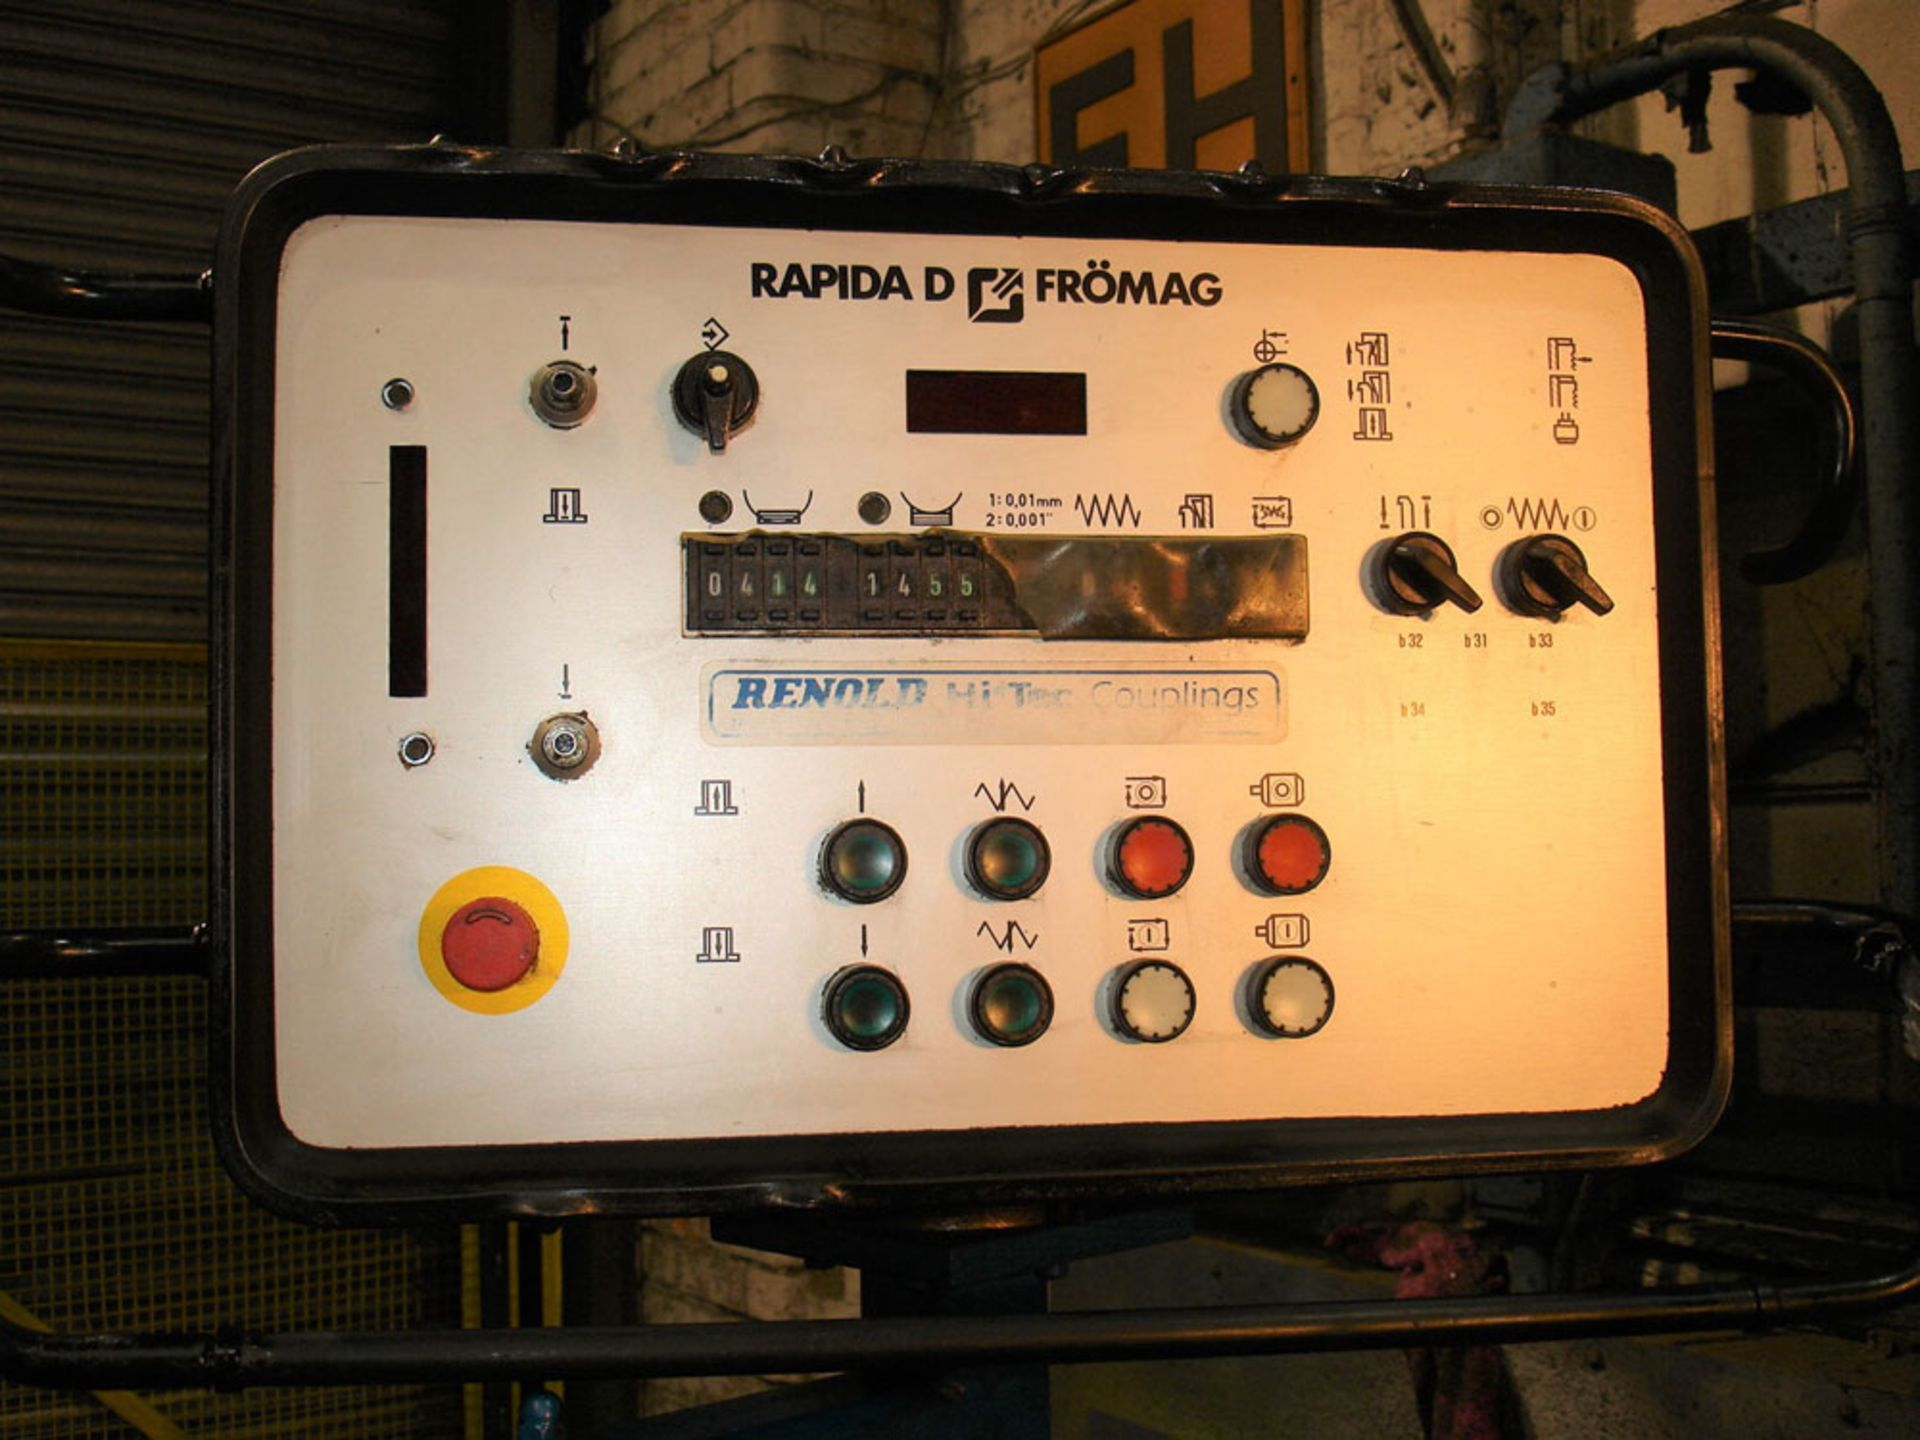 Fromag Rapida RAD 63/425 Broach / Key Seater. New 1986. Pendant Control. - Image 4 of 10